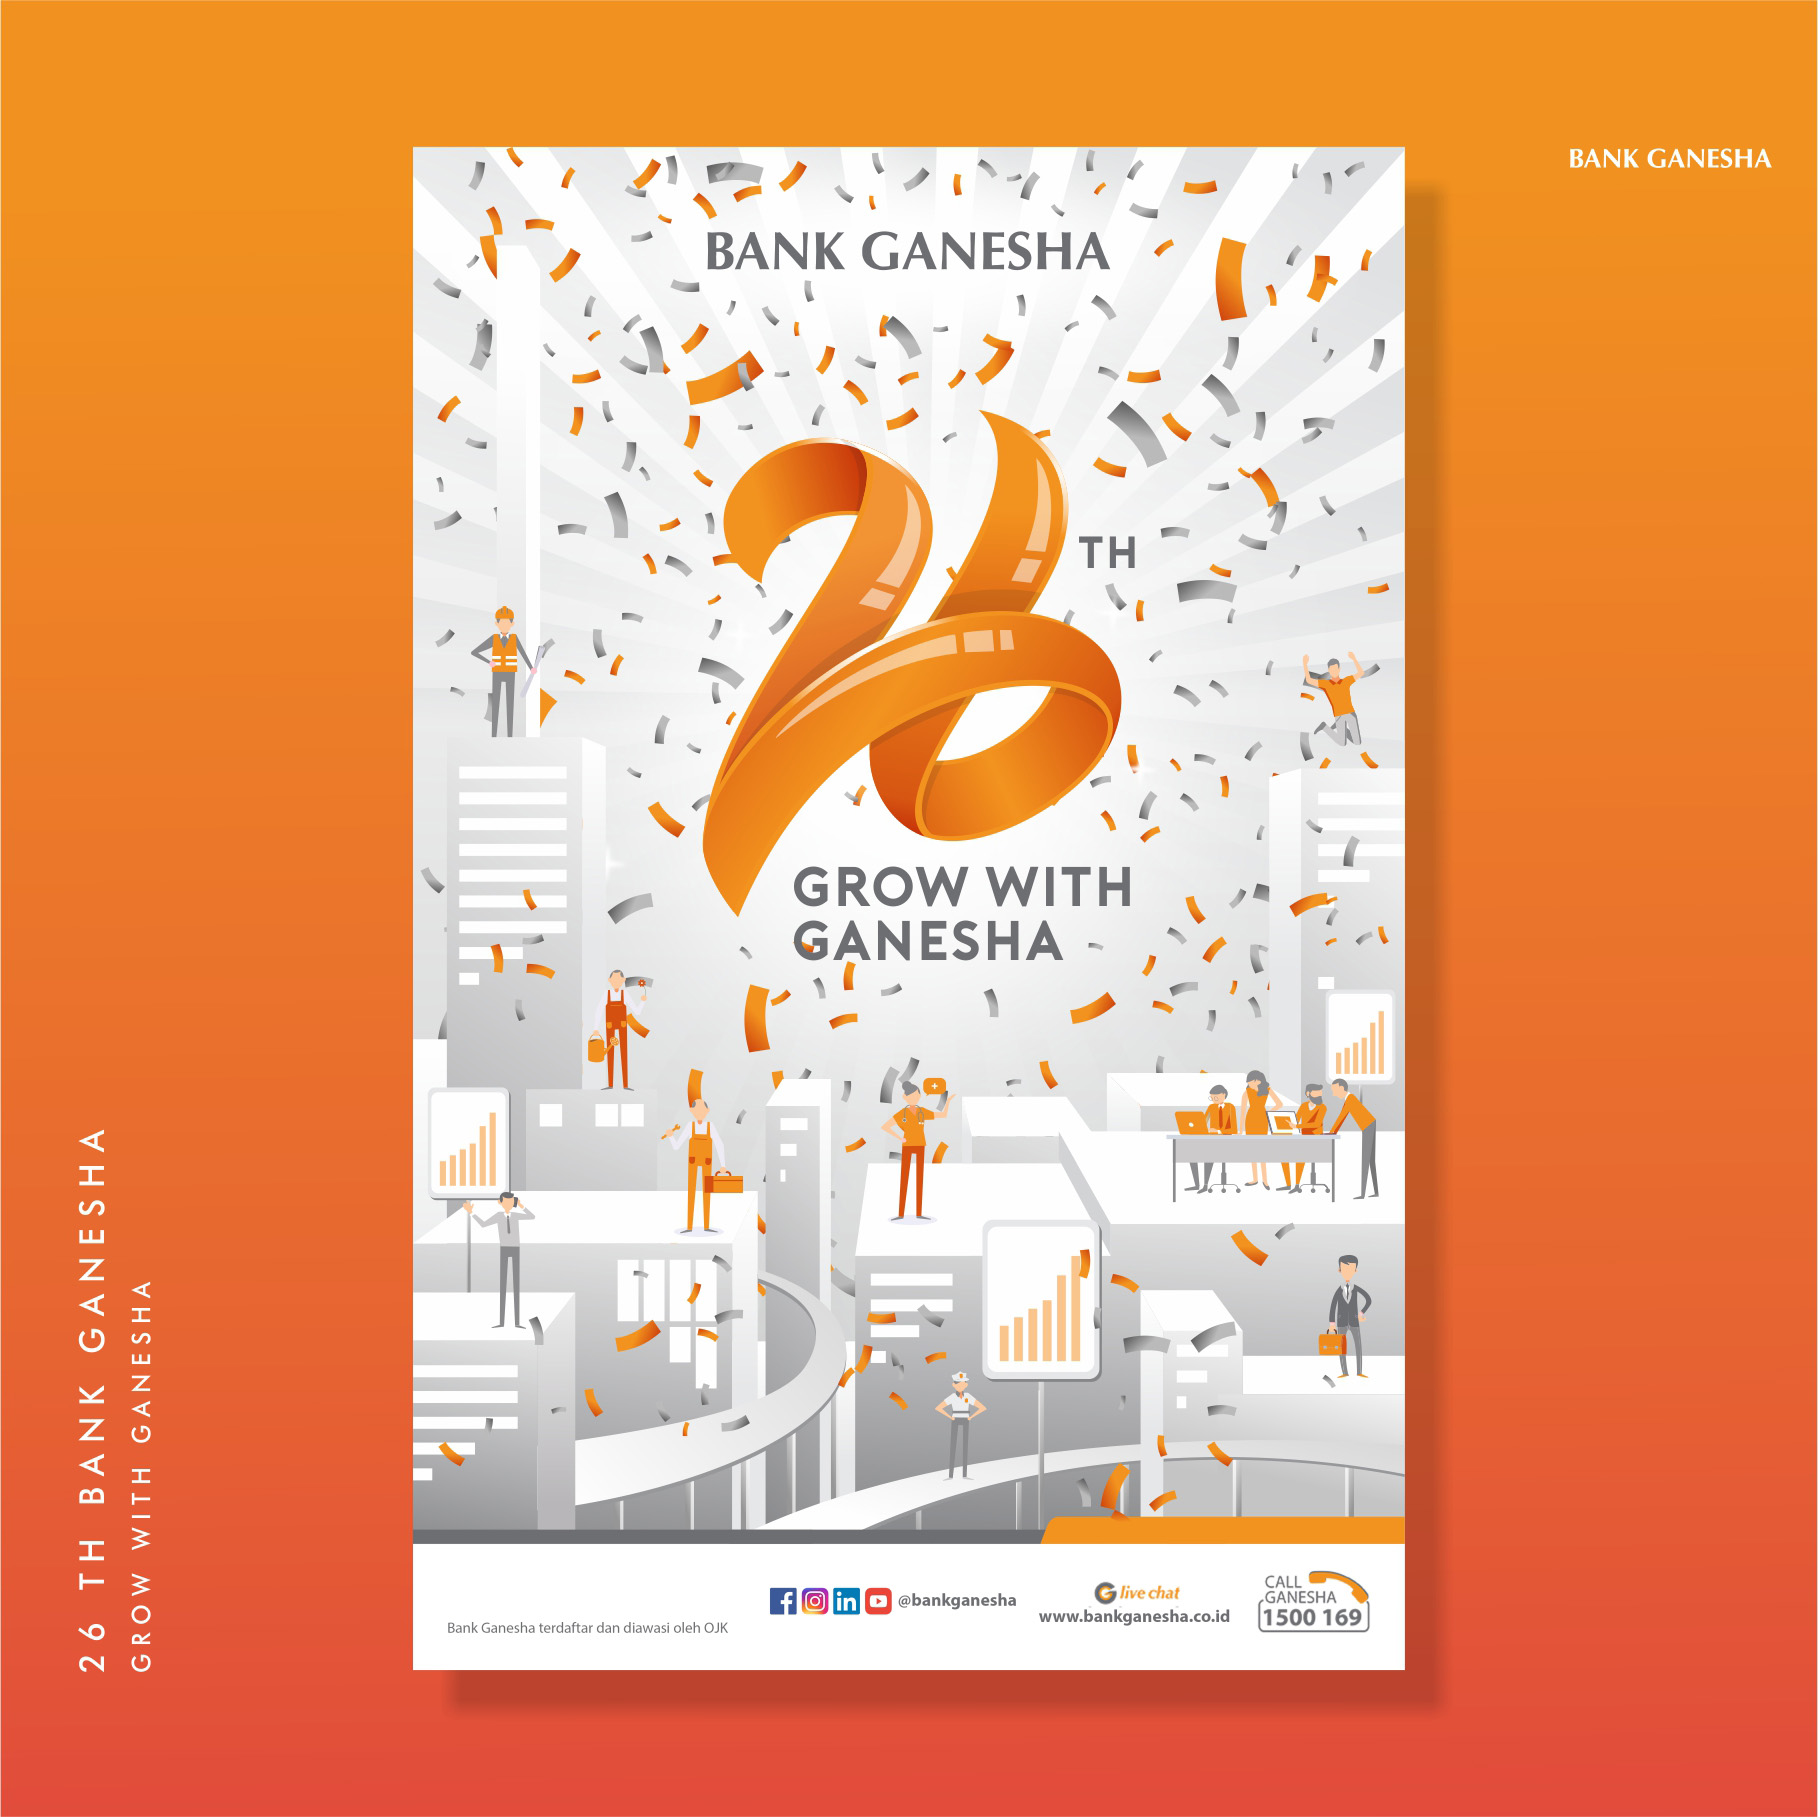 Bank Ganesha 26th Graphic Design Posters Contest